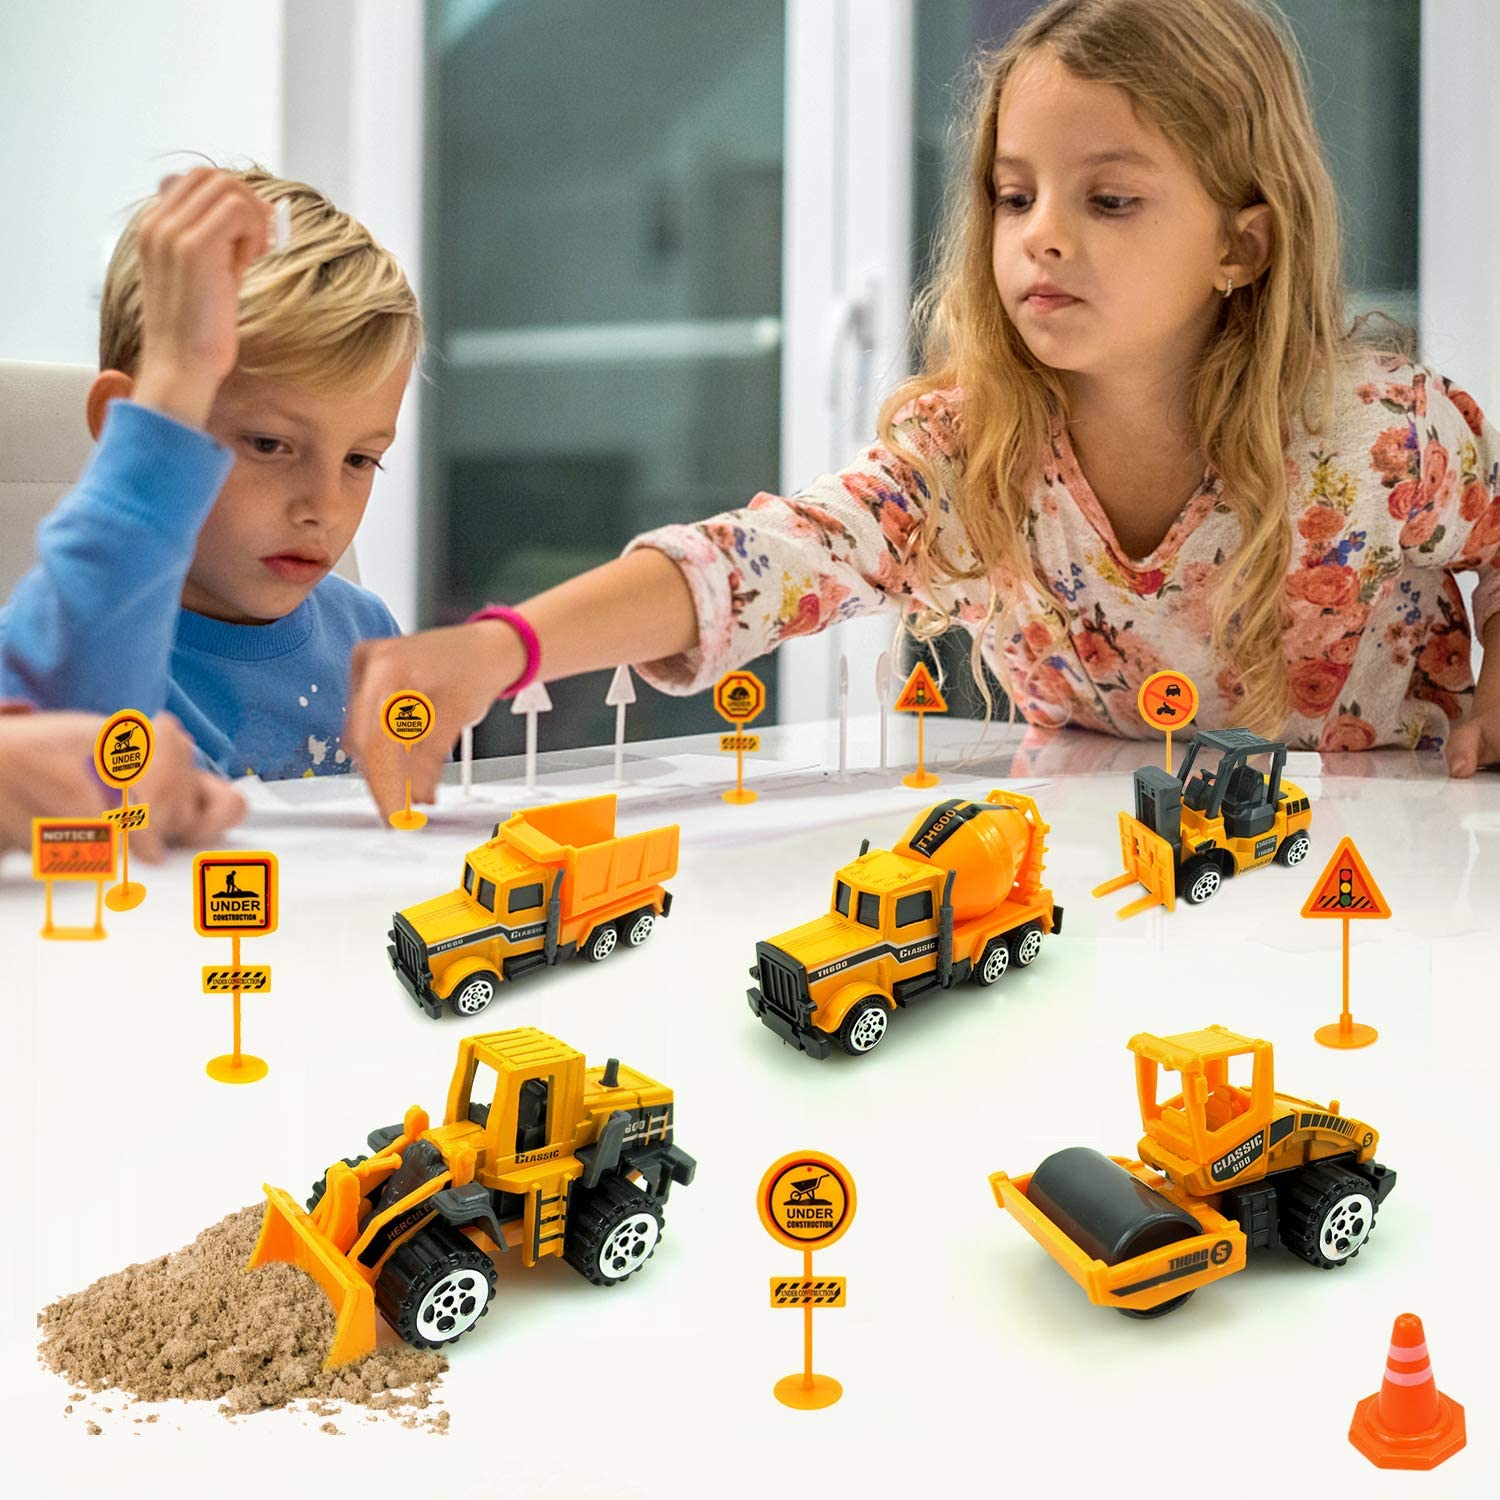 Kids Construction Toys,Mini Engineering Toys Playset for Boys Girls 6 Pcs Construction Vehicles Trucks /& 10 Traffic Sign for Easter Egg Basket Stuffers Kids Toddlers